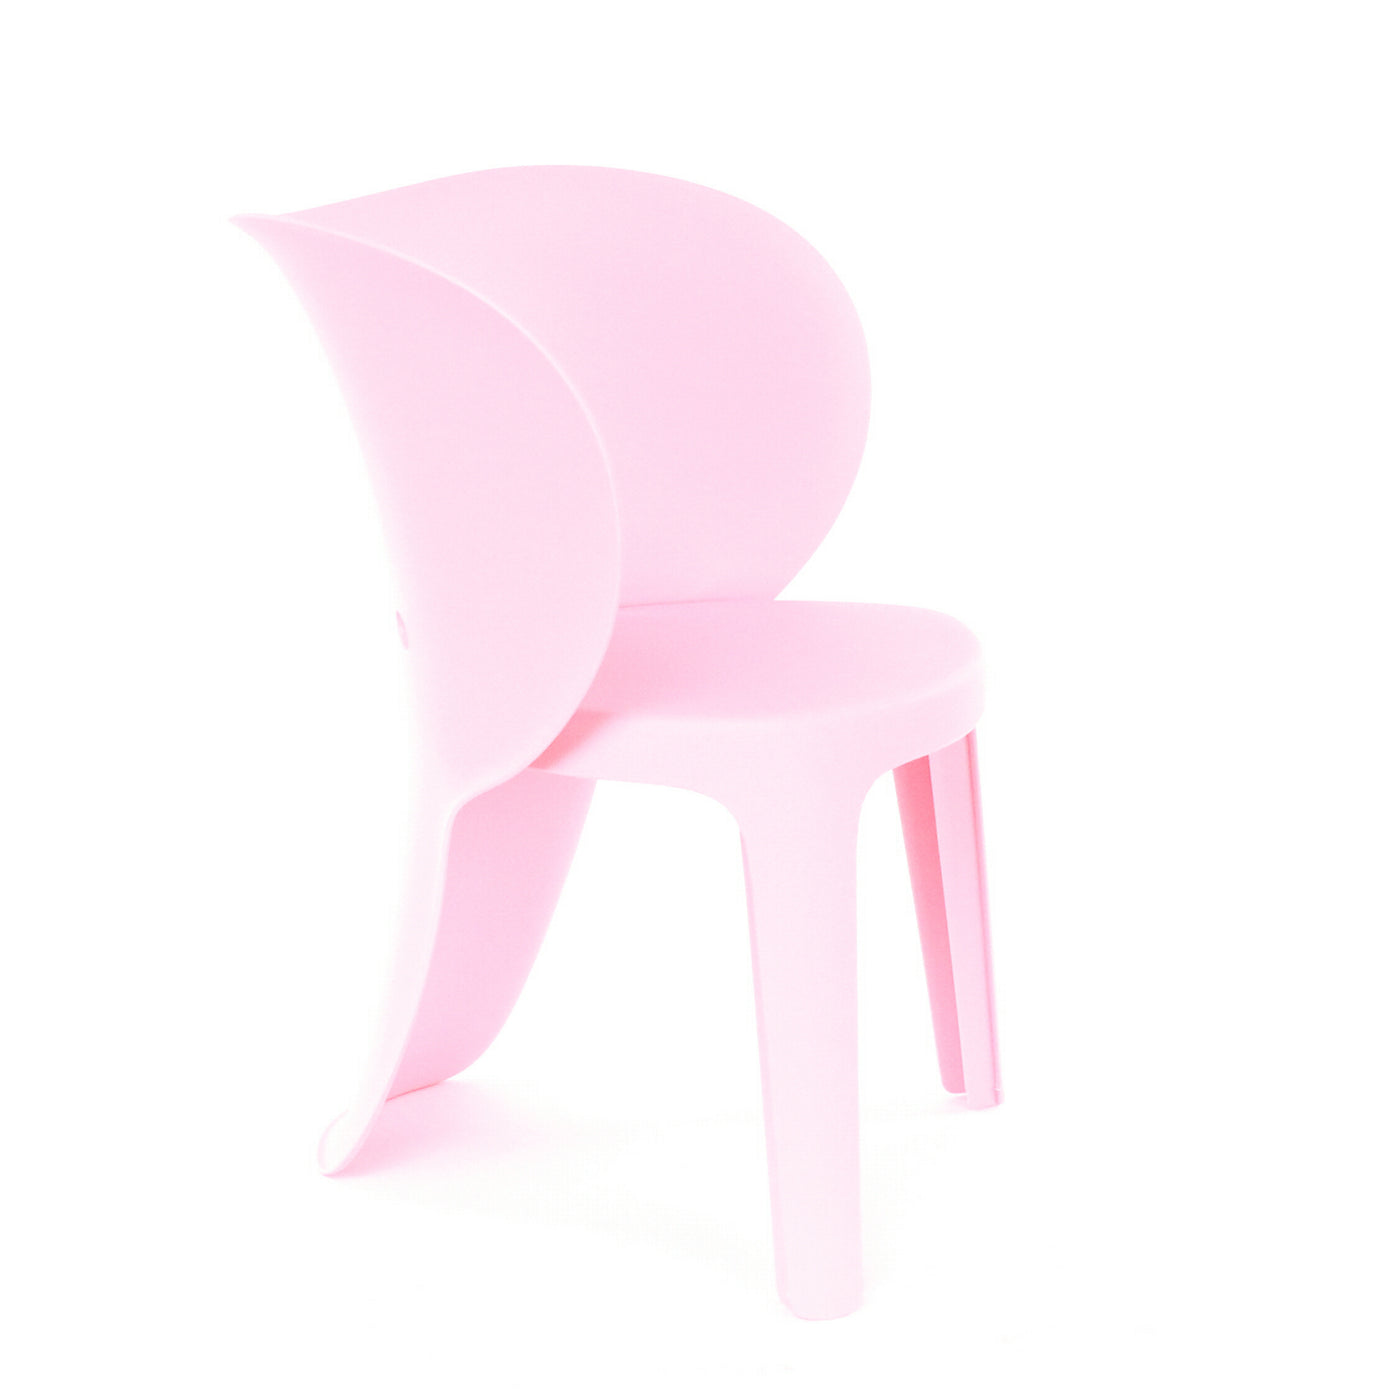 Awesome Design Lab Mn Ls 9606 Pnk Elephant Baby Pink Kids Chair Set Of 4 Dailytribune Chair Design For Home Dailytribuneorg